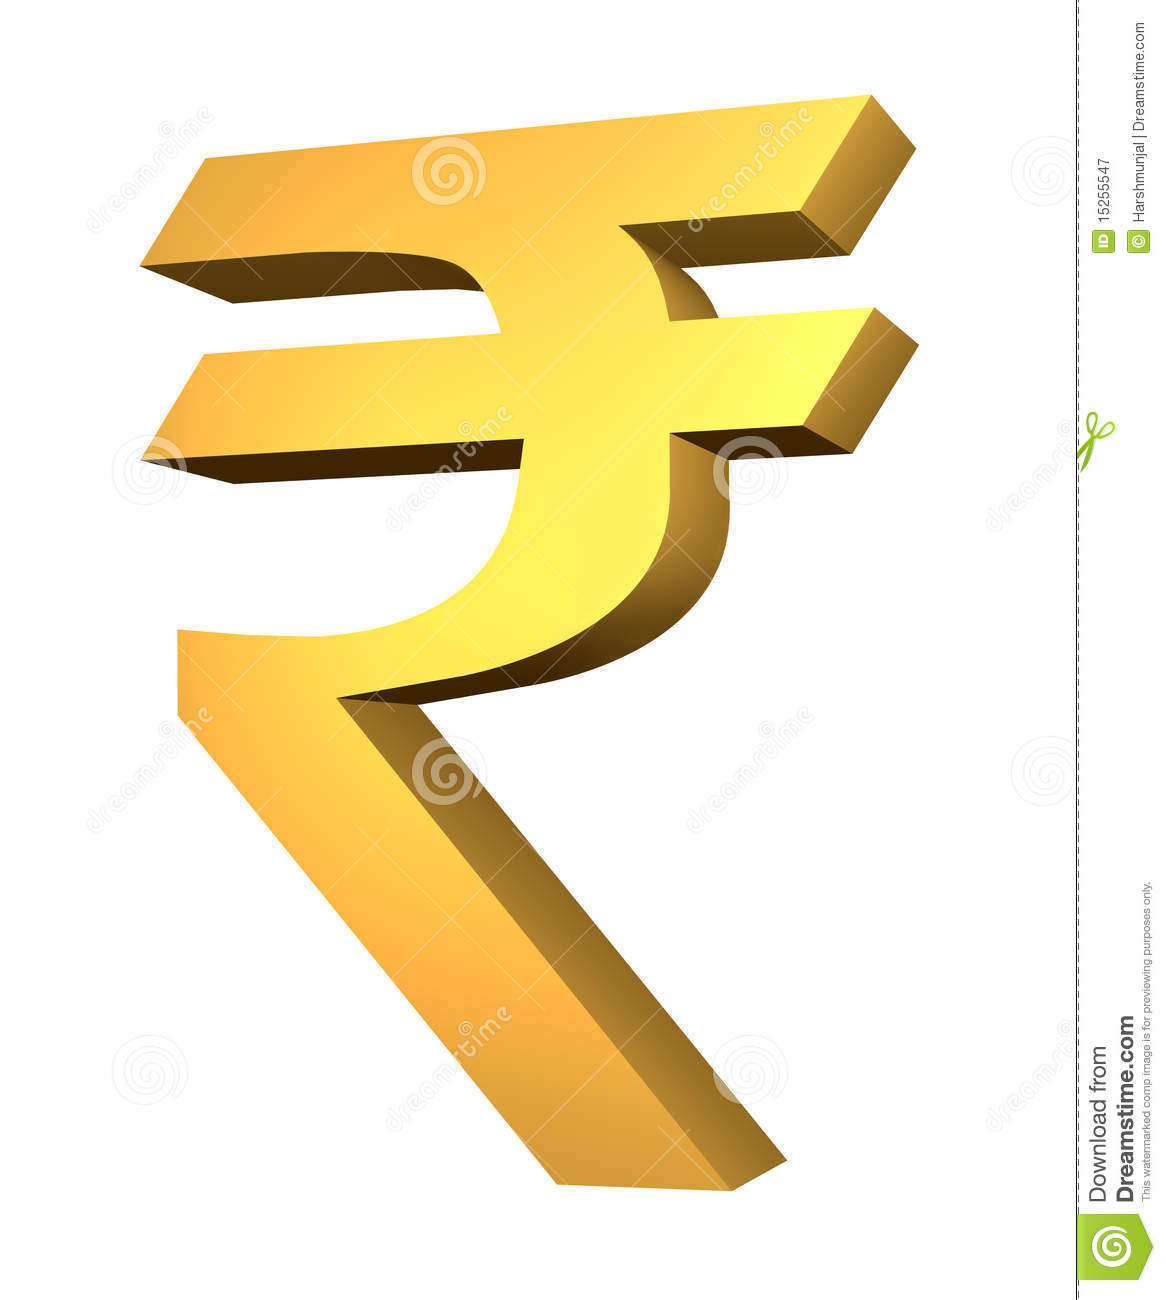 Official Rupee Symbol Stock Illustration Illustration Of India